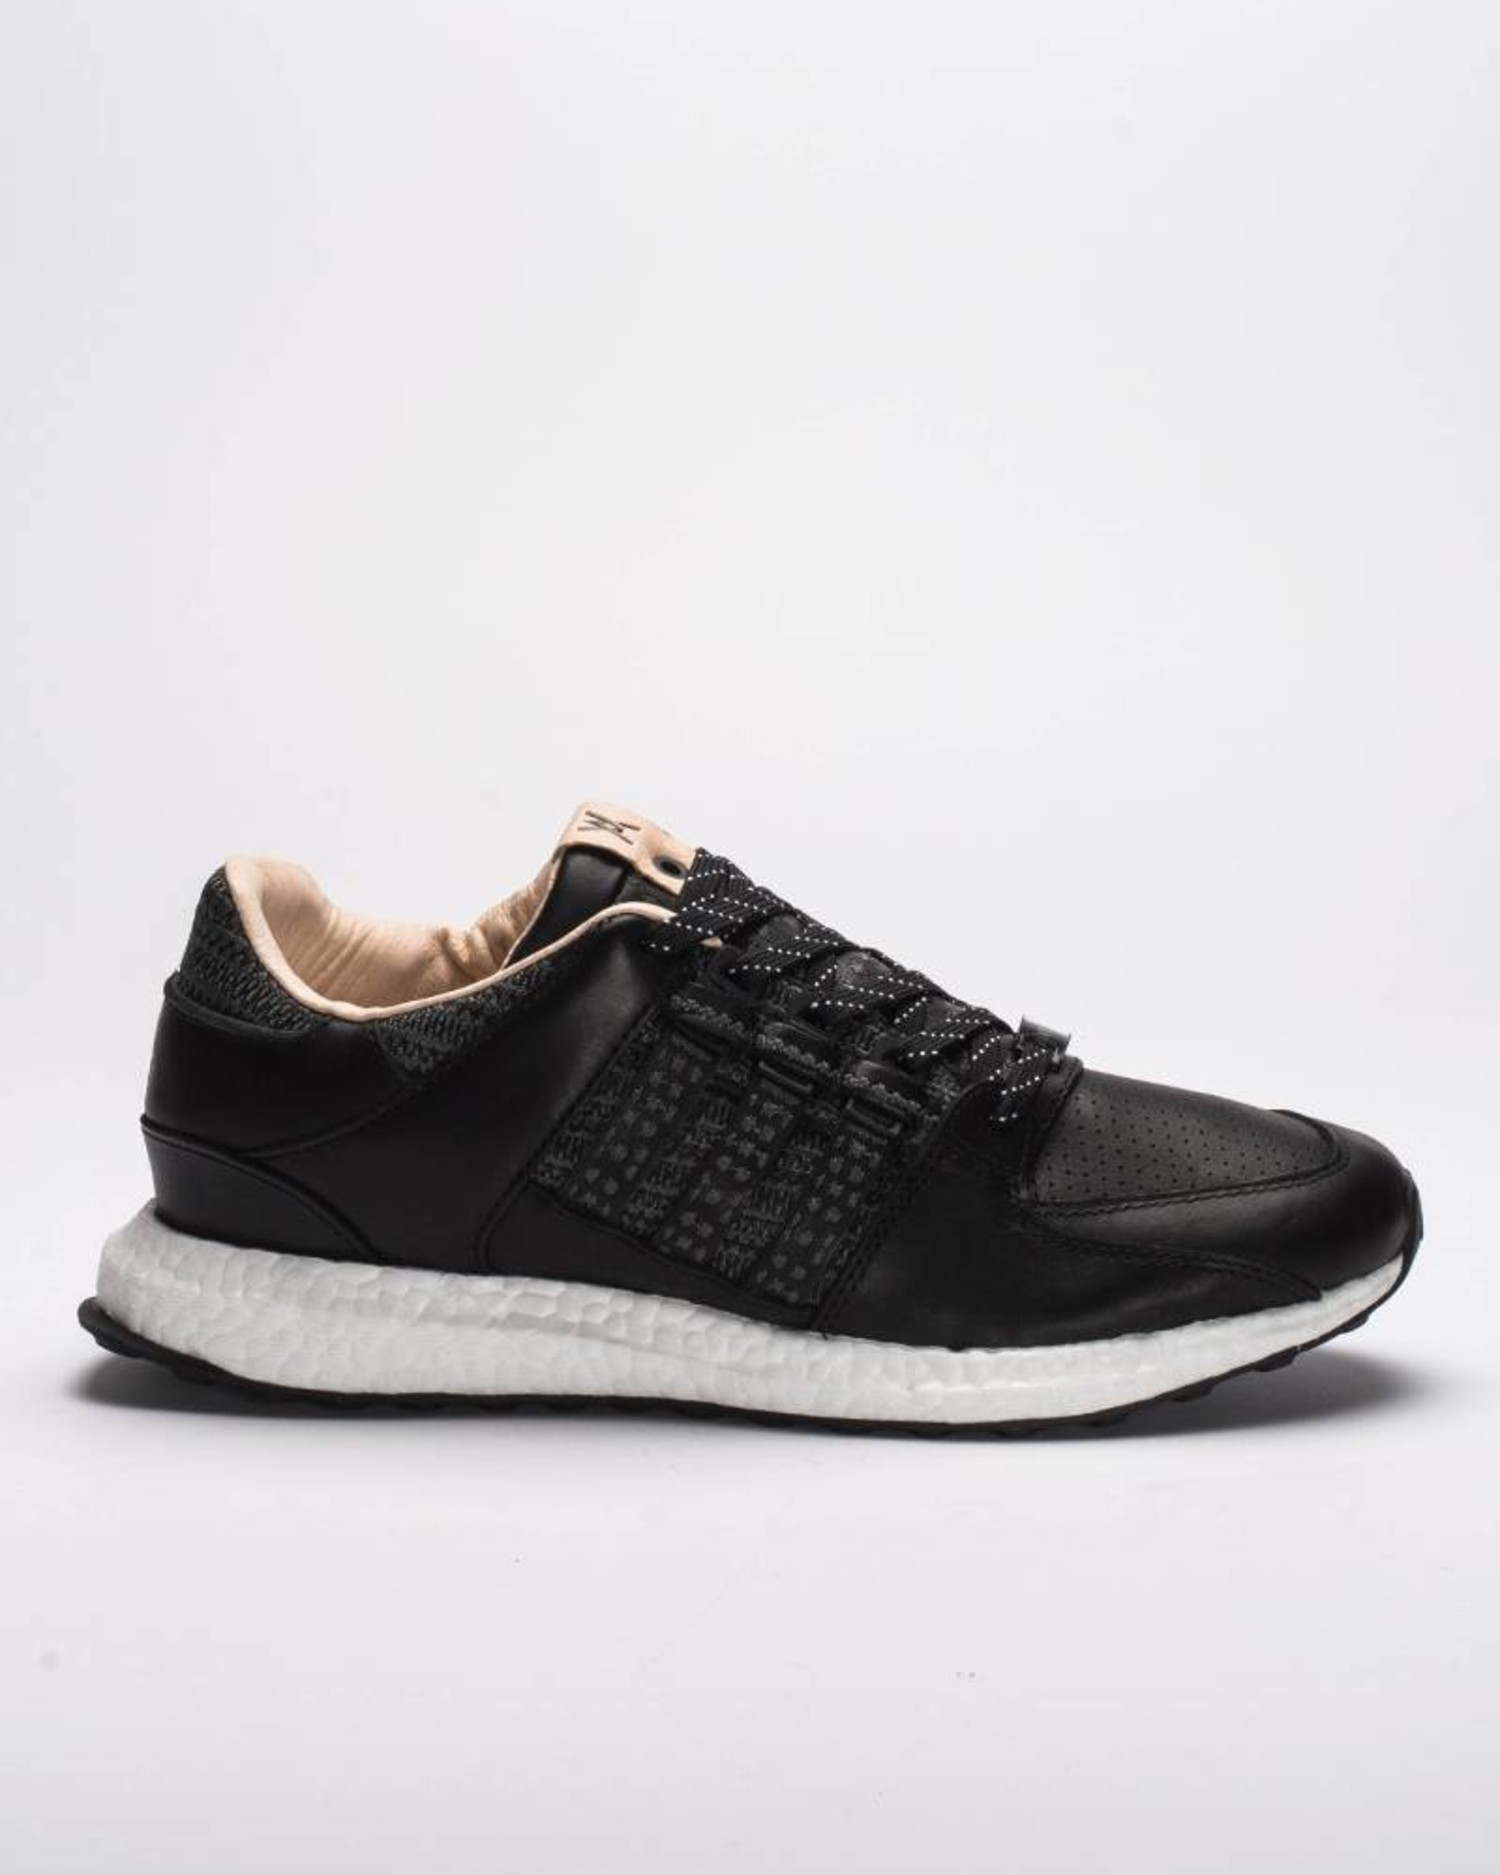 best sneakers 6448a 7bb2a Adidas Adidas consortium x Avenue eqt support 93/16 black/white